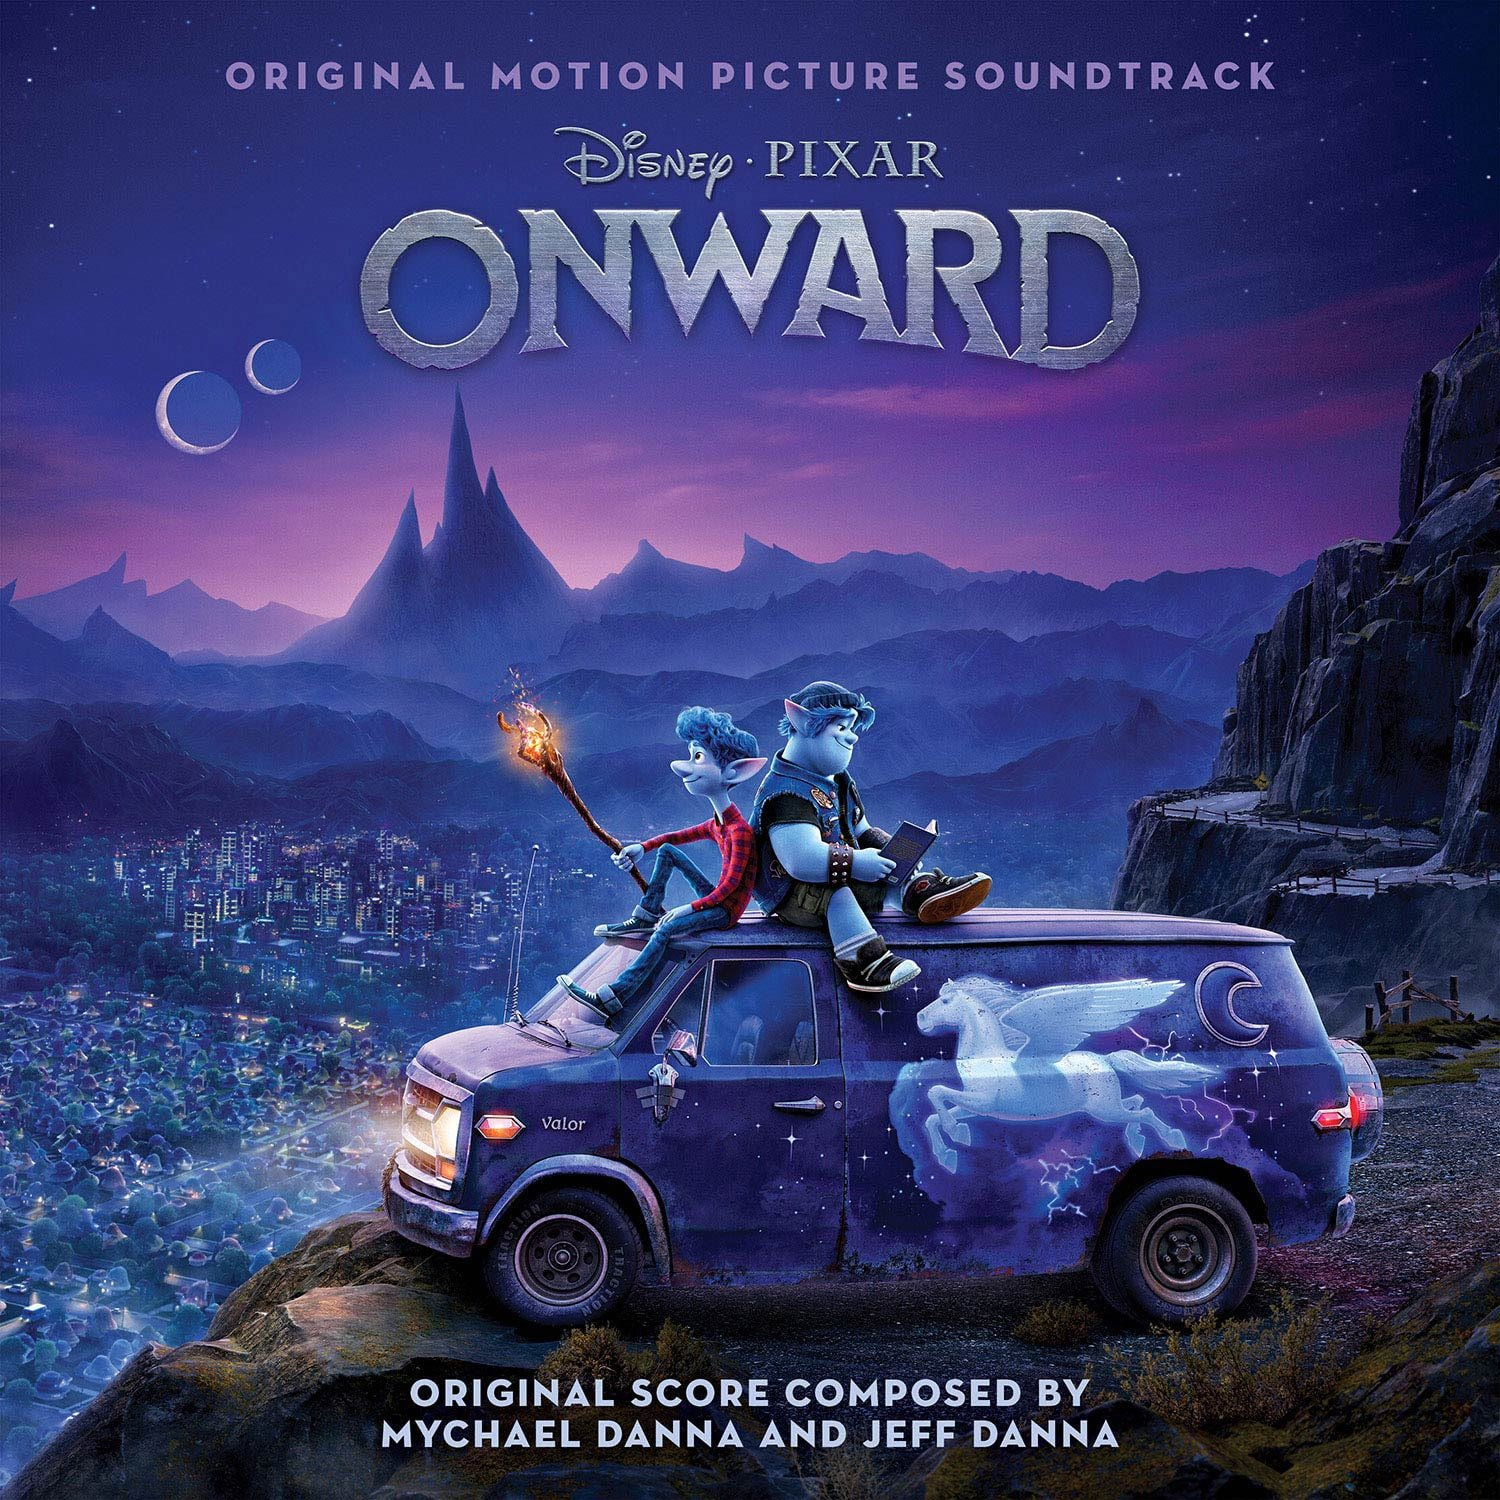 """Disney's Onward Soundtrack Cover Art. Five-time GRAMMY® Award-winning singer/songwriter Brandi Carlile has been tapped to perform an emotionally poignant song, """"Carried Me With You,"""" for the end credits of the upcoming Disney and Pixar film """"Onward."""""""